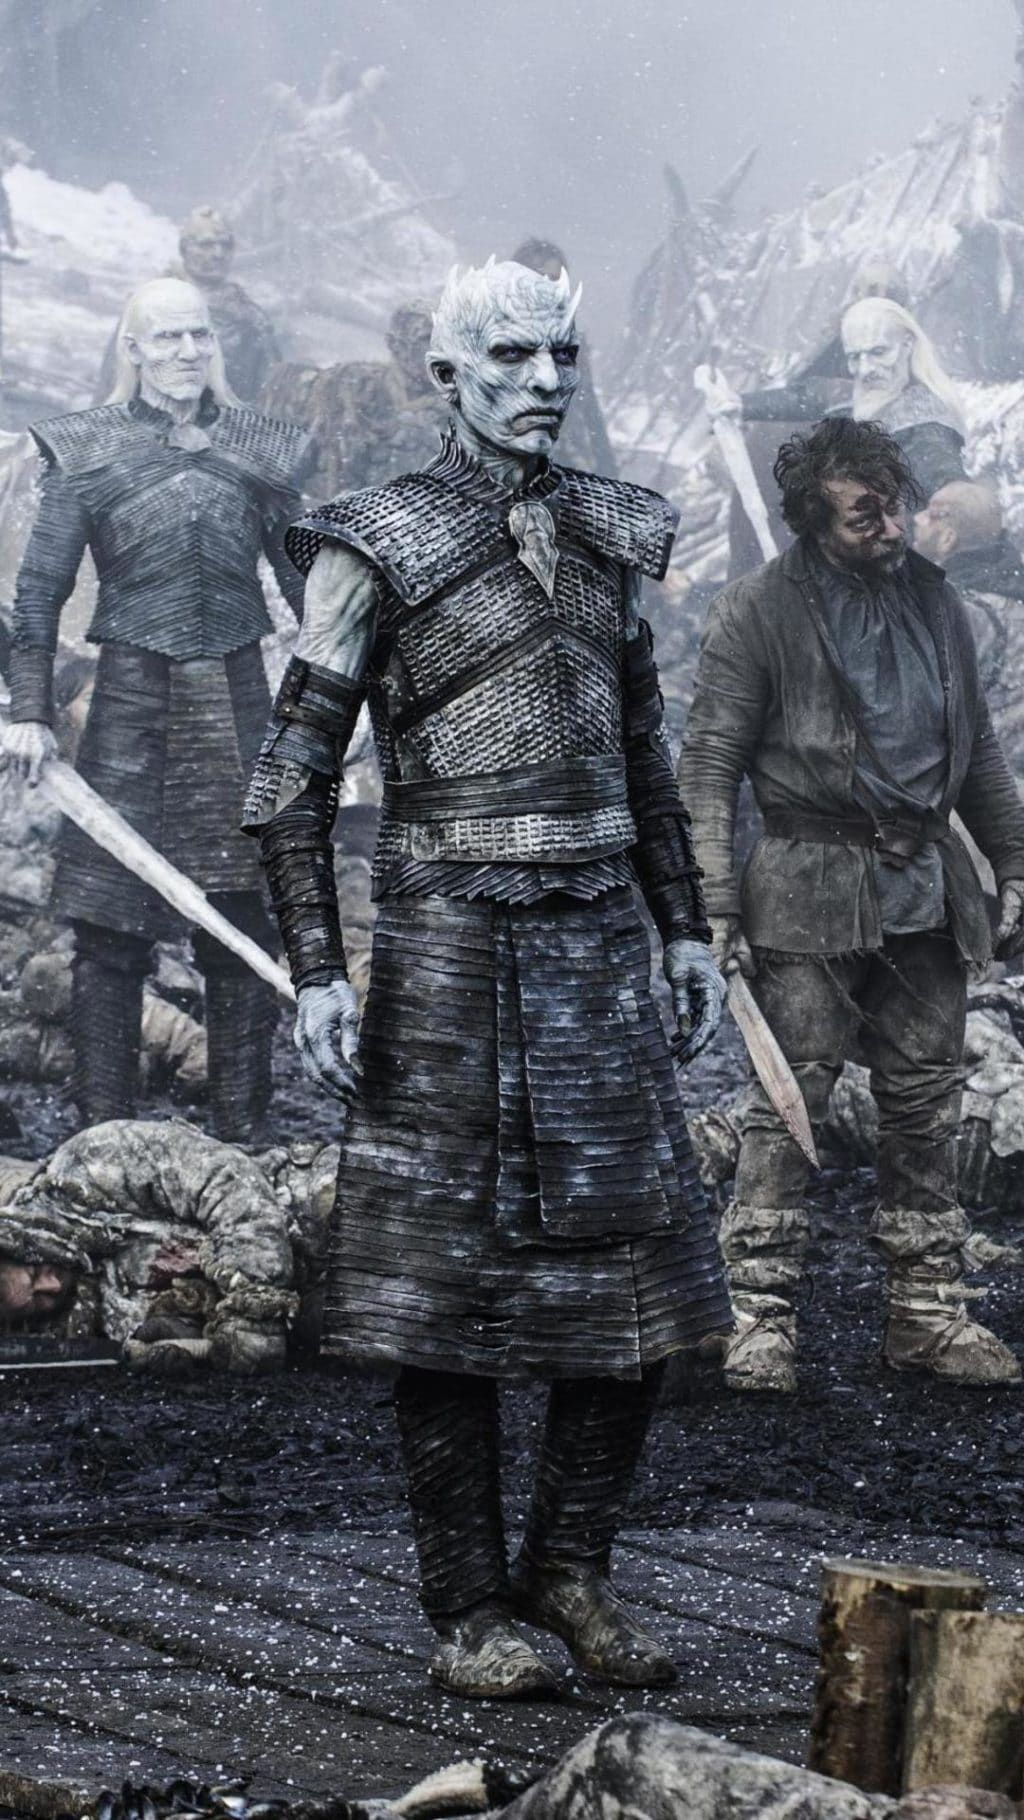 Cool Game Of Thrones Wallpapers For Iphone And Ipad Iphone Hacks In 2021 Iphone Wallpaper Dark Portrait Iphone Hacks Game of thrones wallpaper iphone xs max